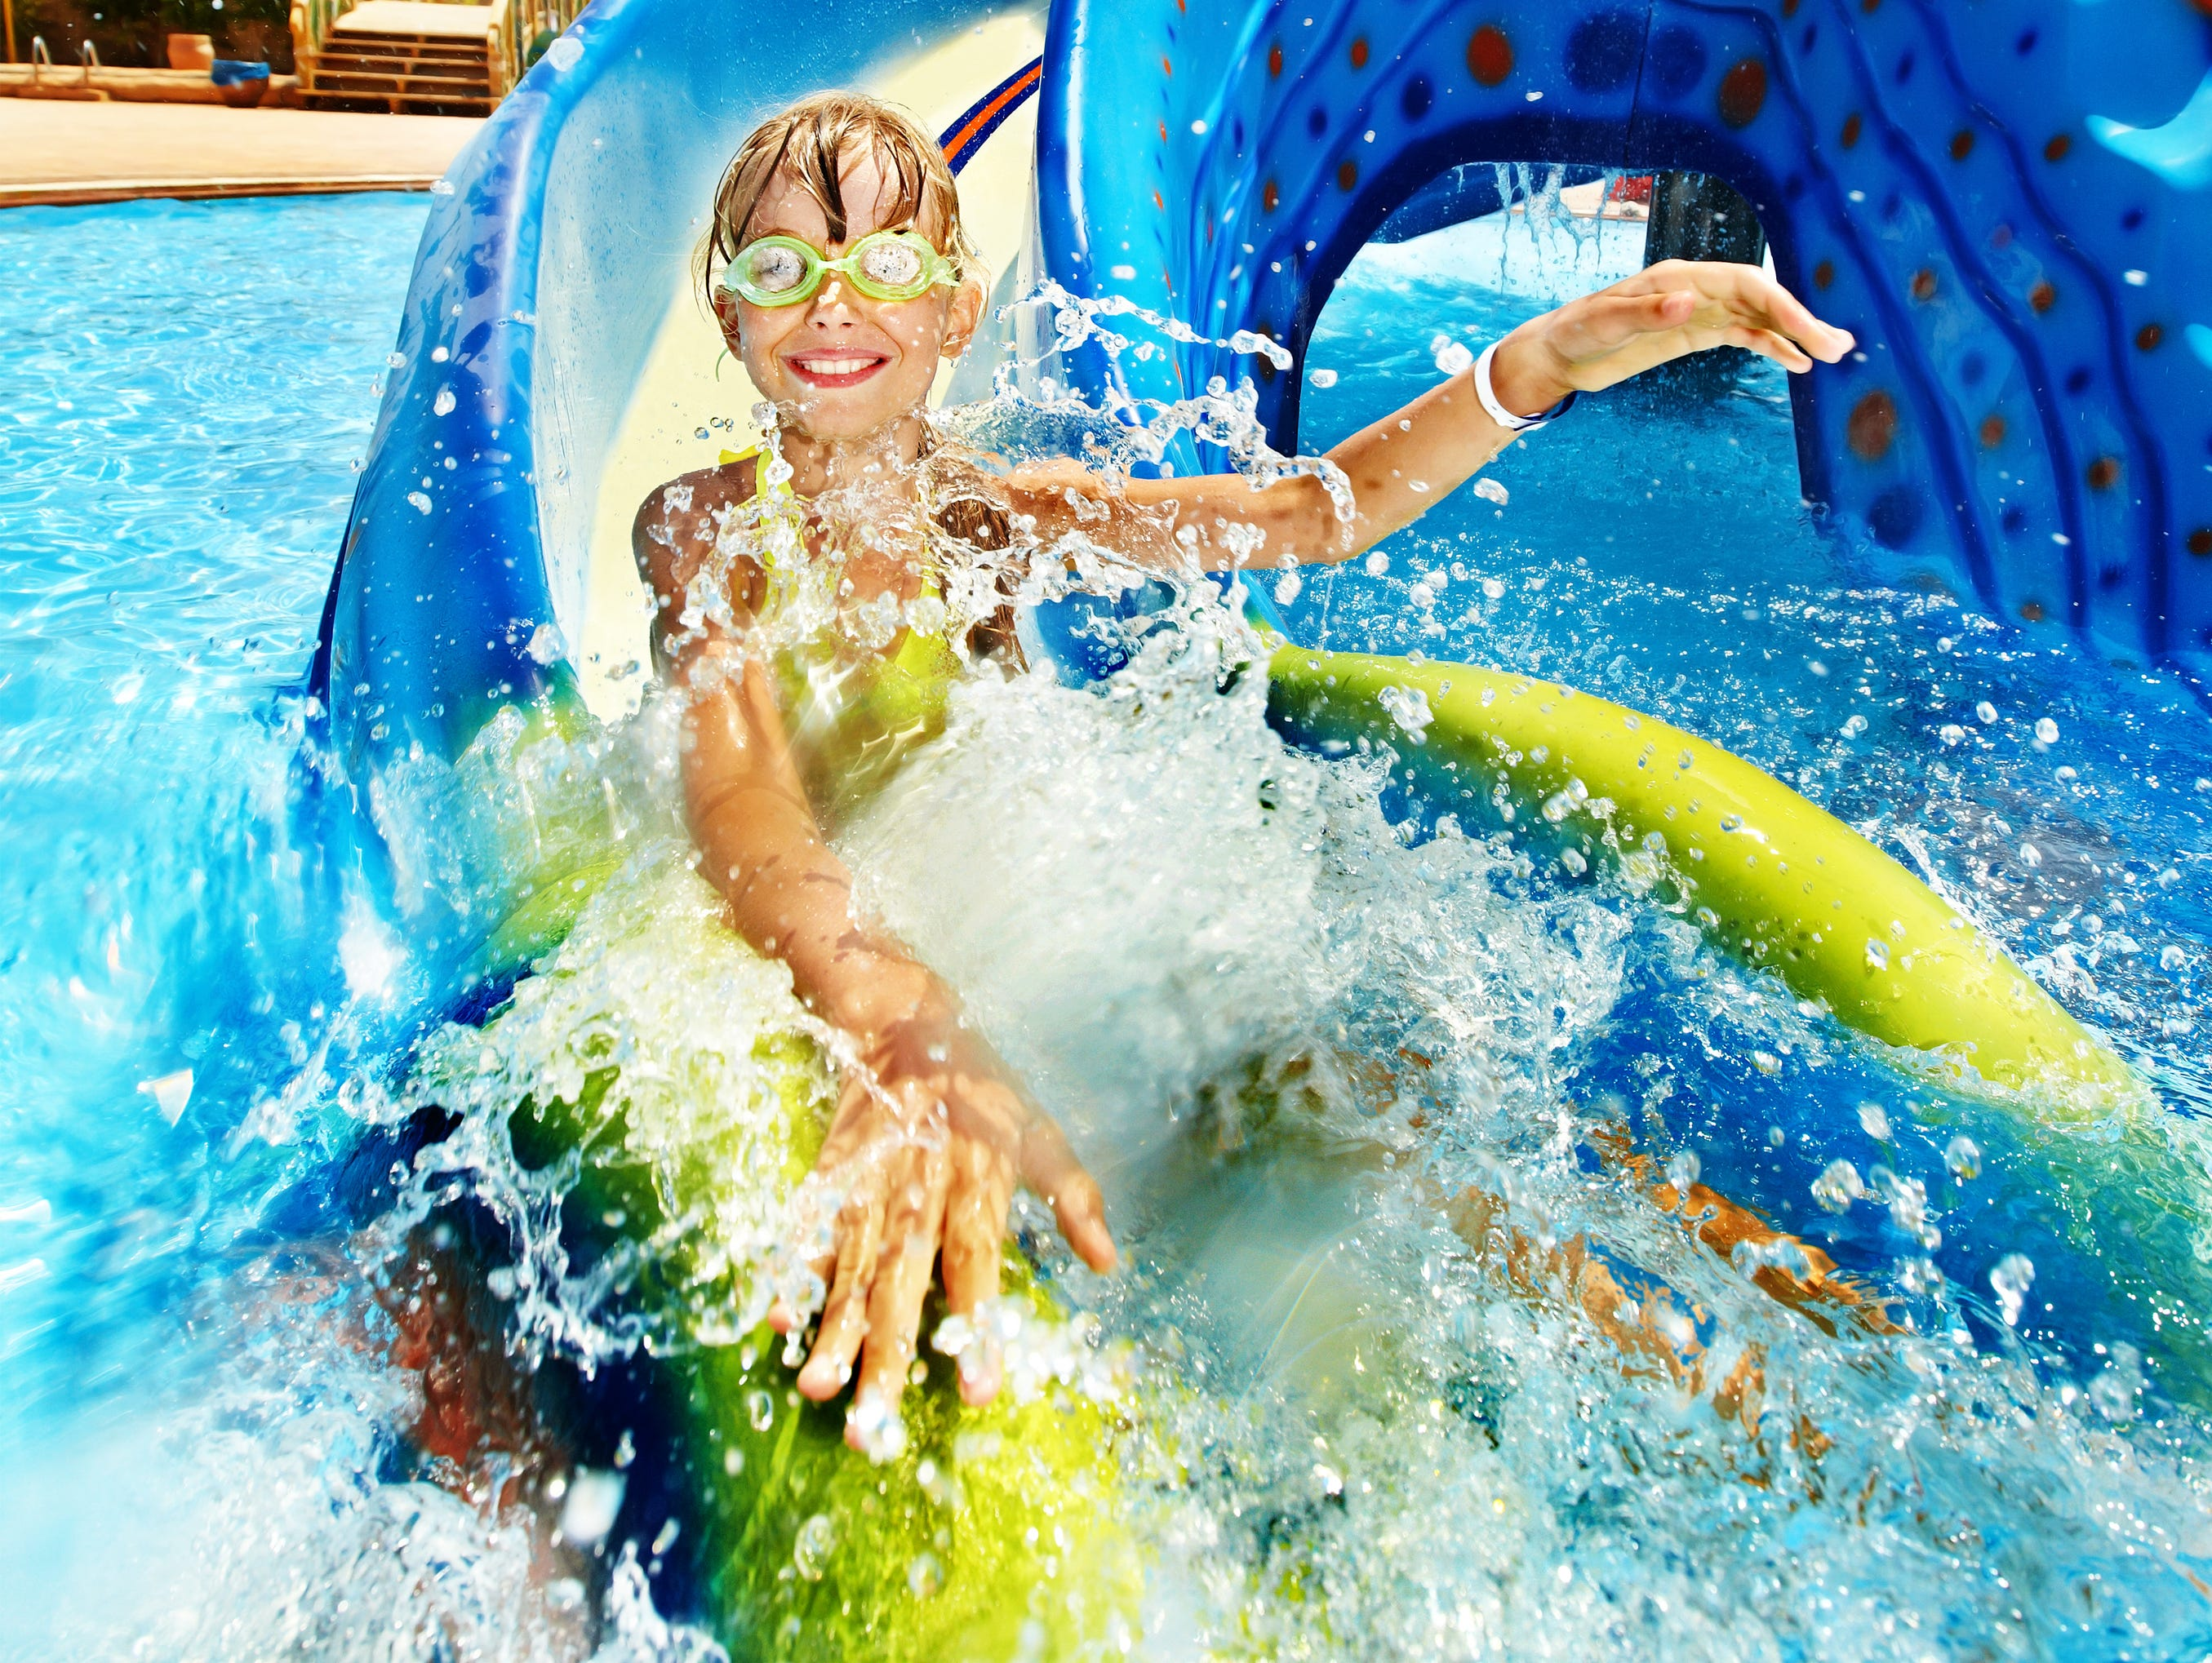 Save over 35% at Noah's Ark Water Park and other parks nationwide.